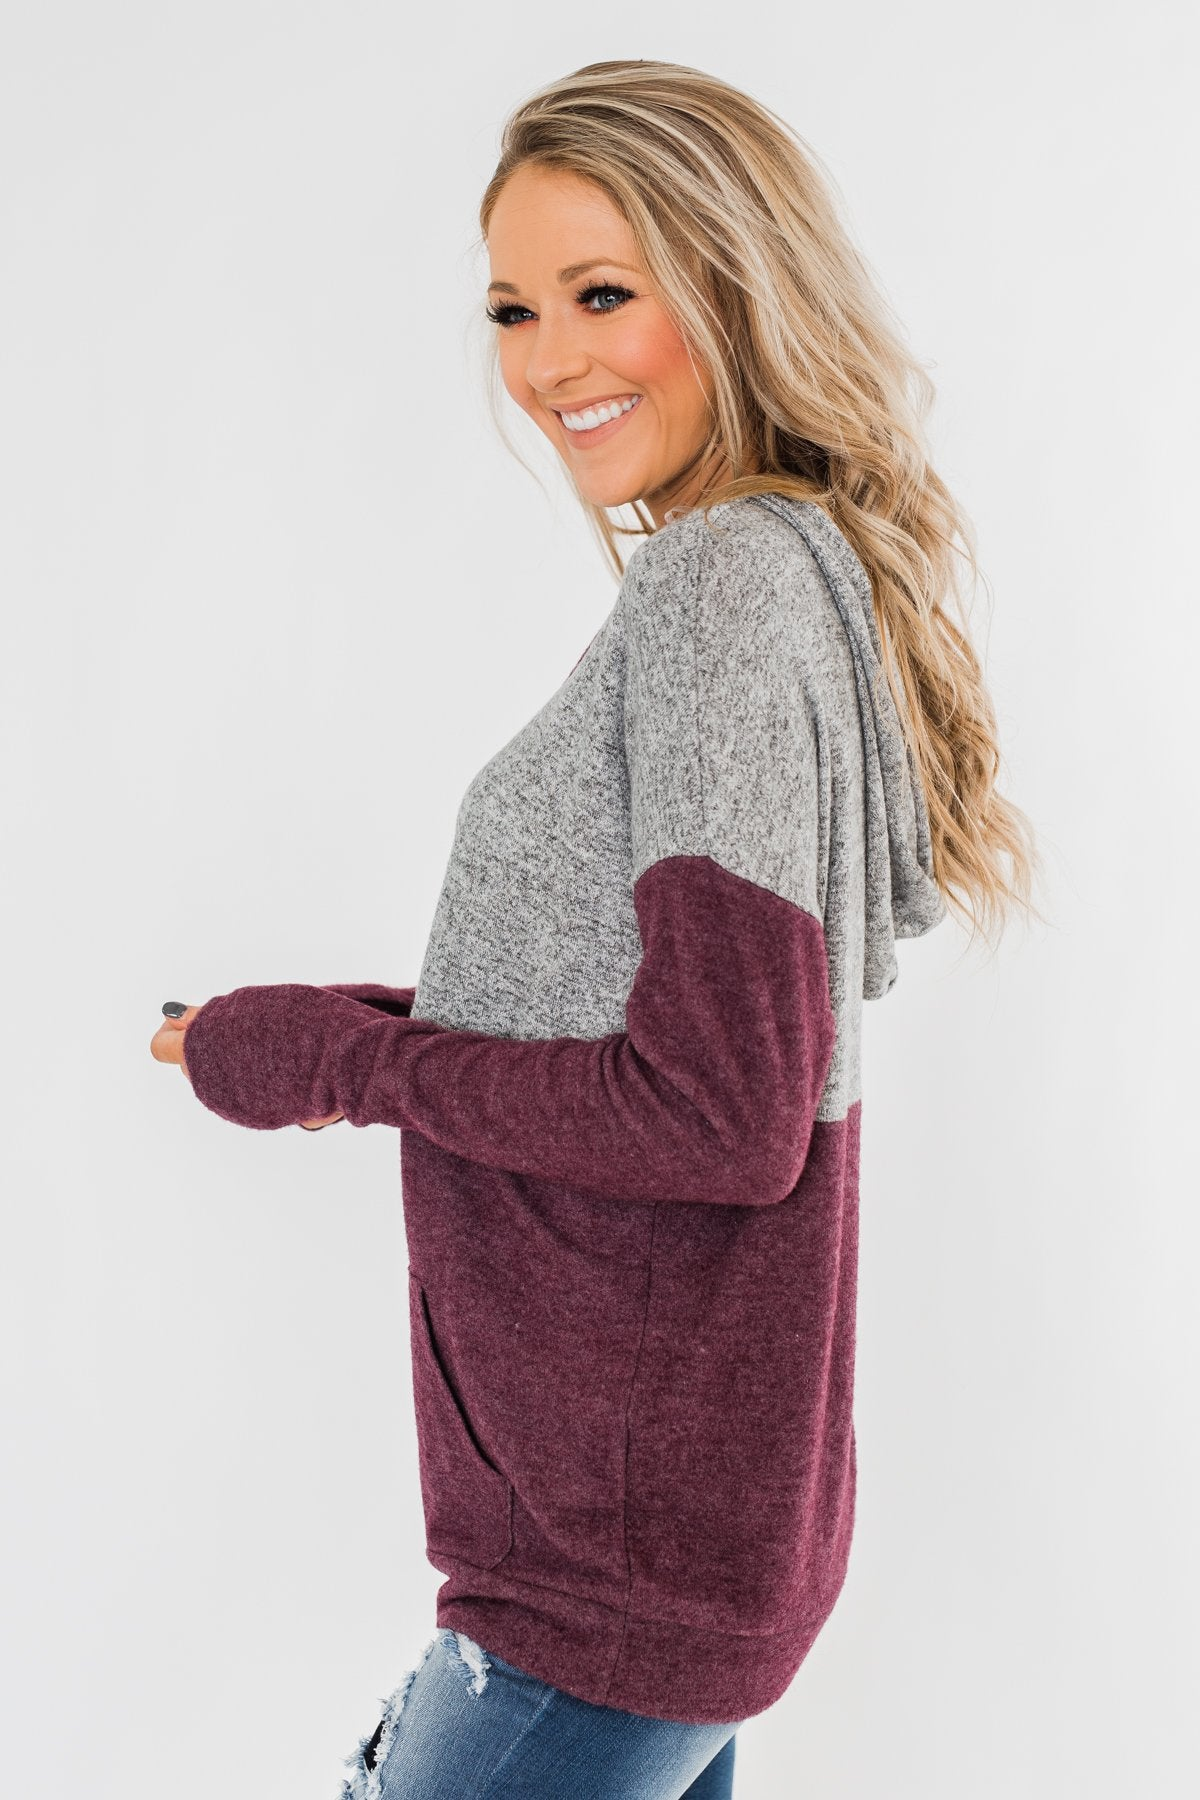 Melting Into You Drawstring Hoodie- Plum & Heather Grey